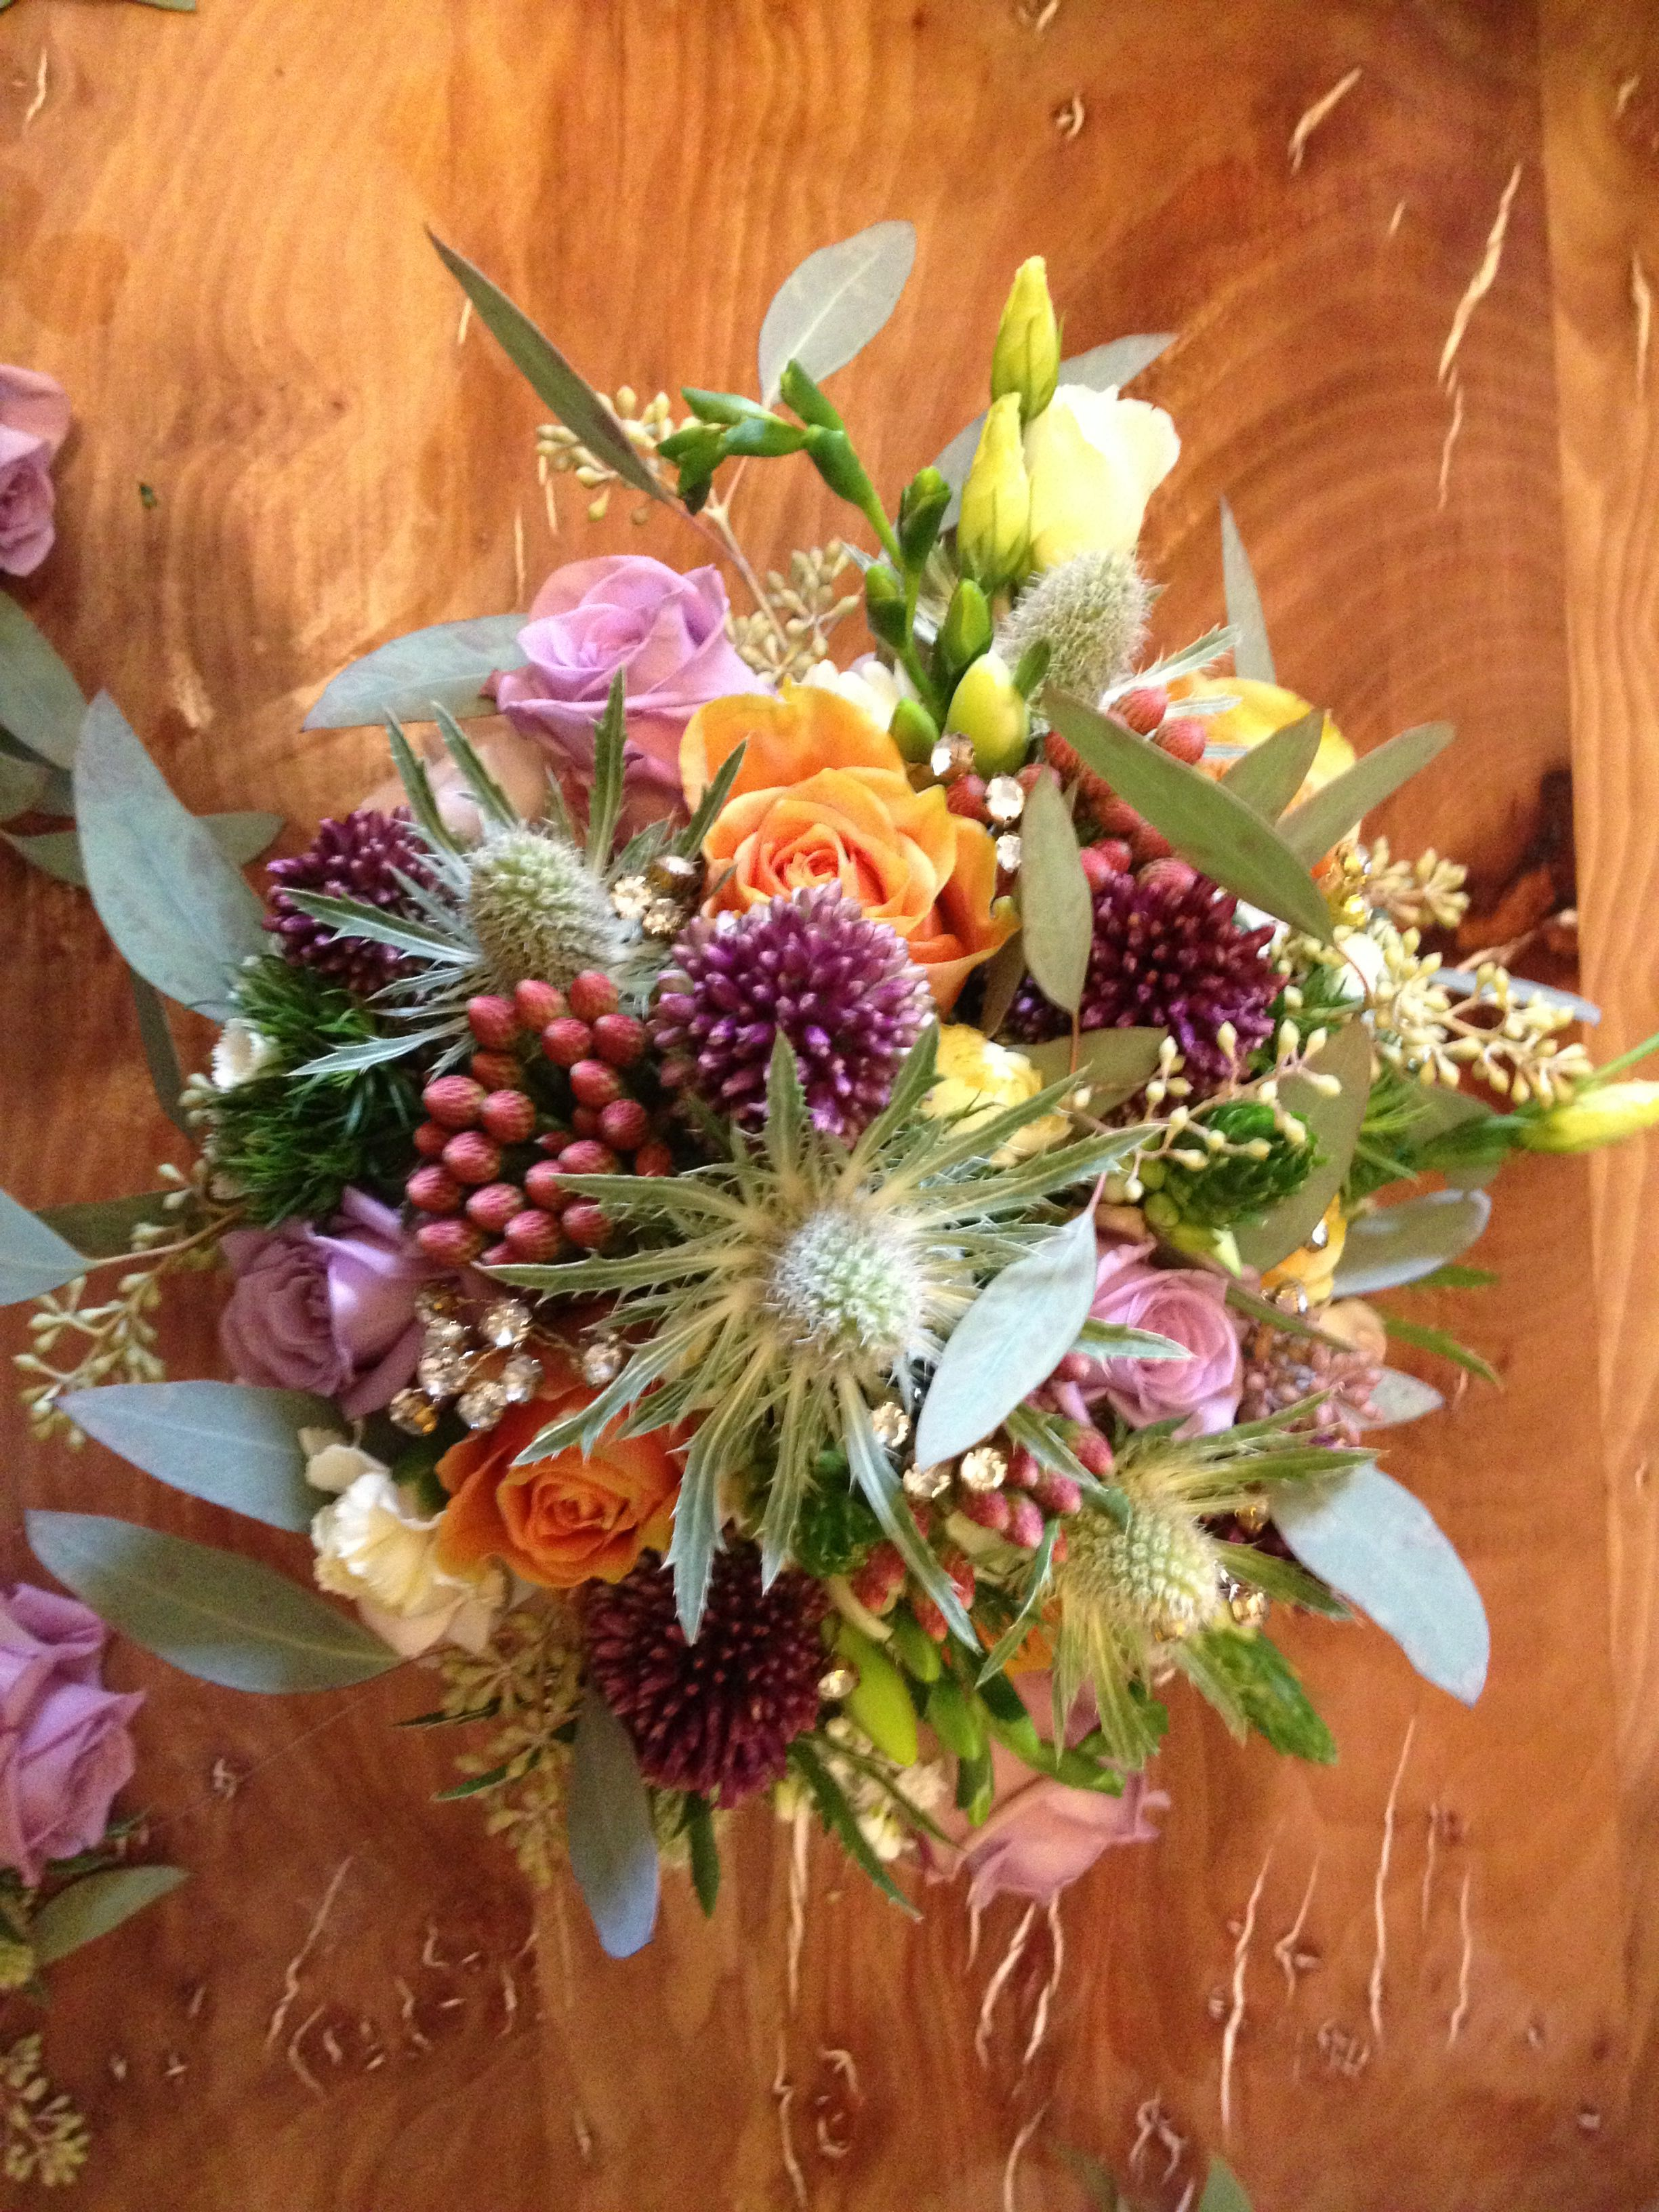 Bridal bouquet we wanted to achieve an informal